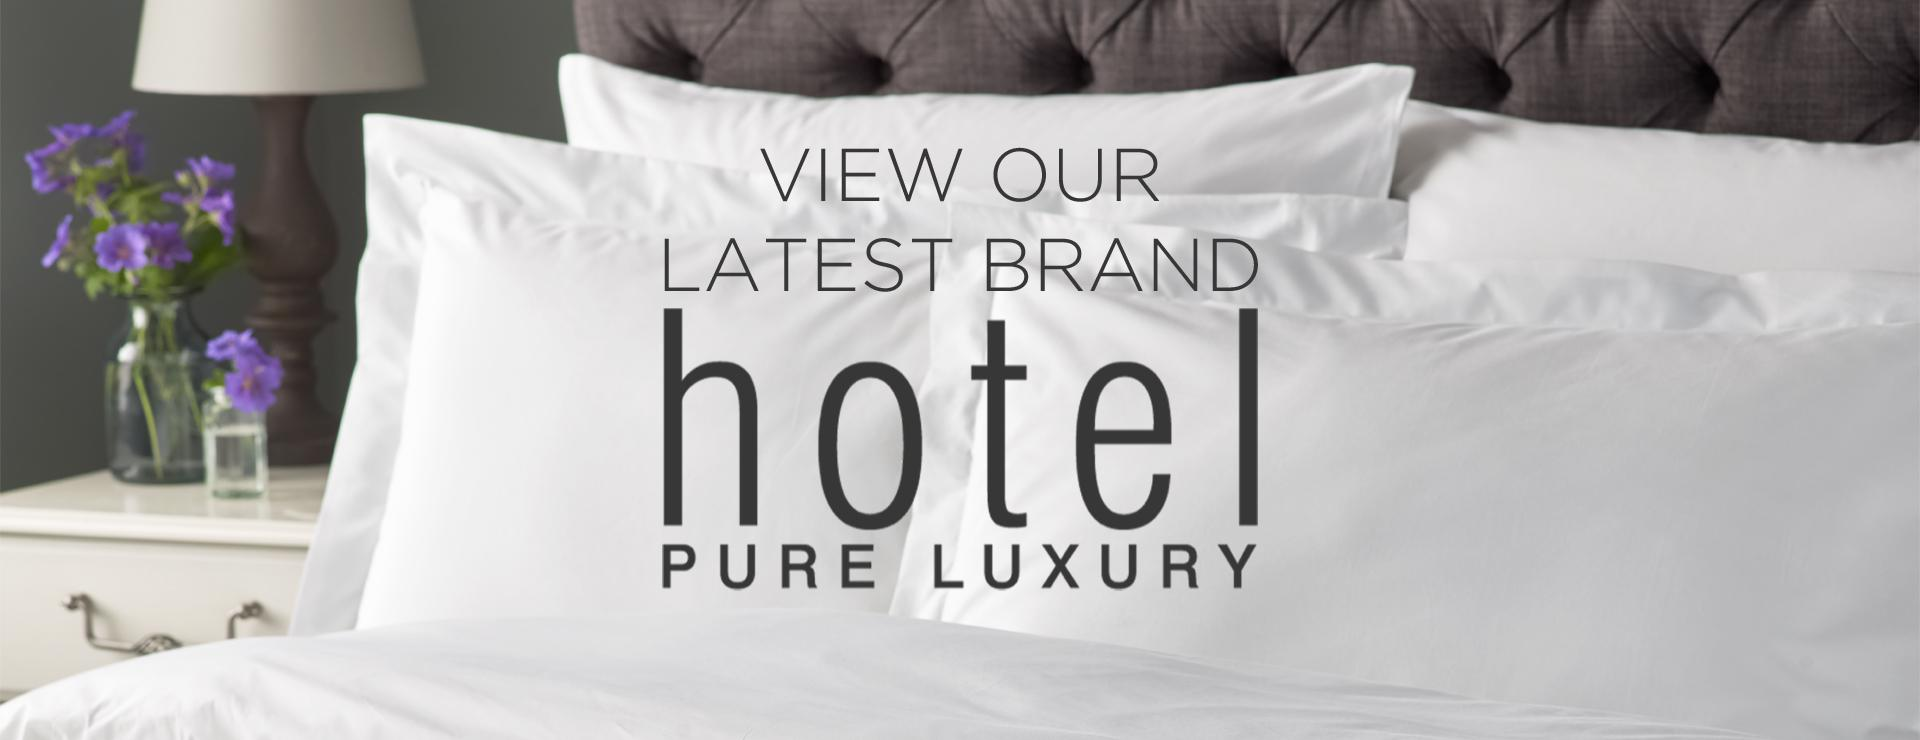 View our hotel pure luxury brand